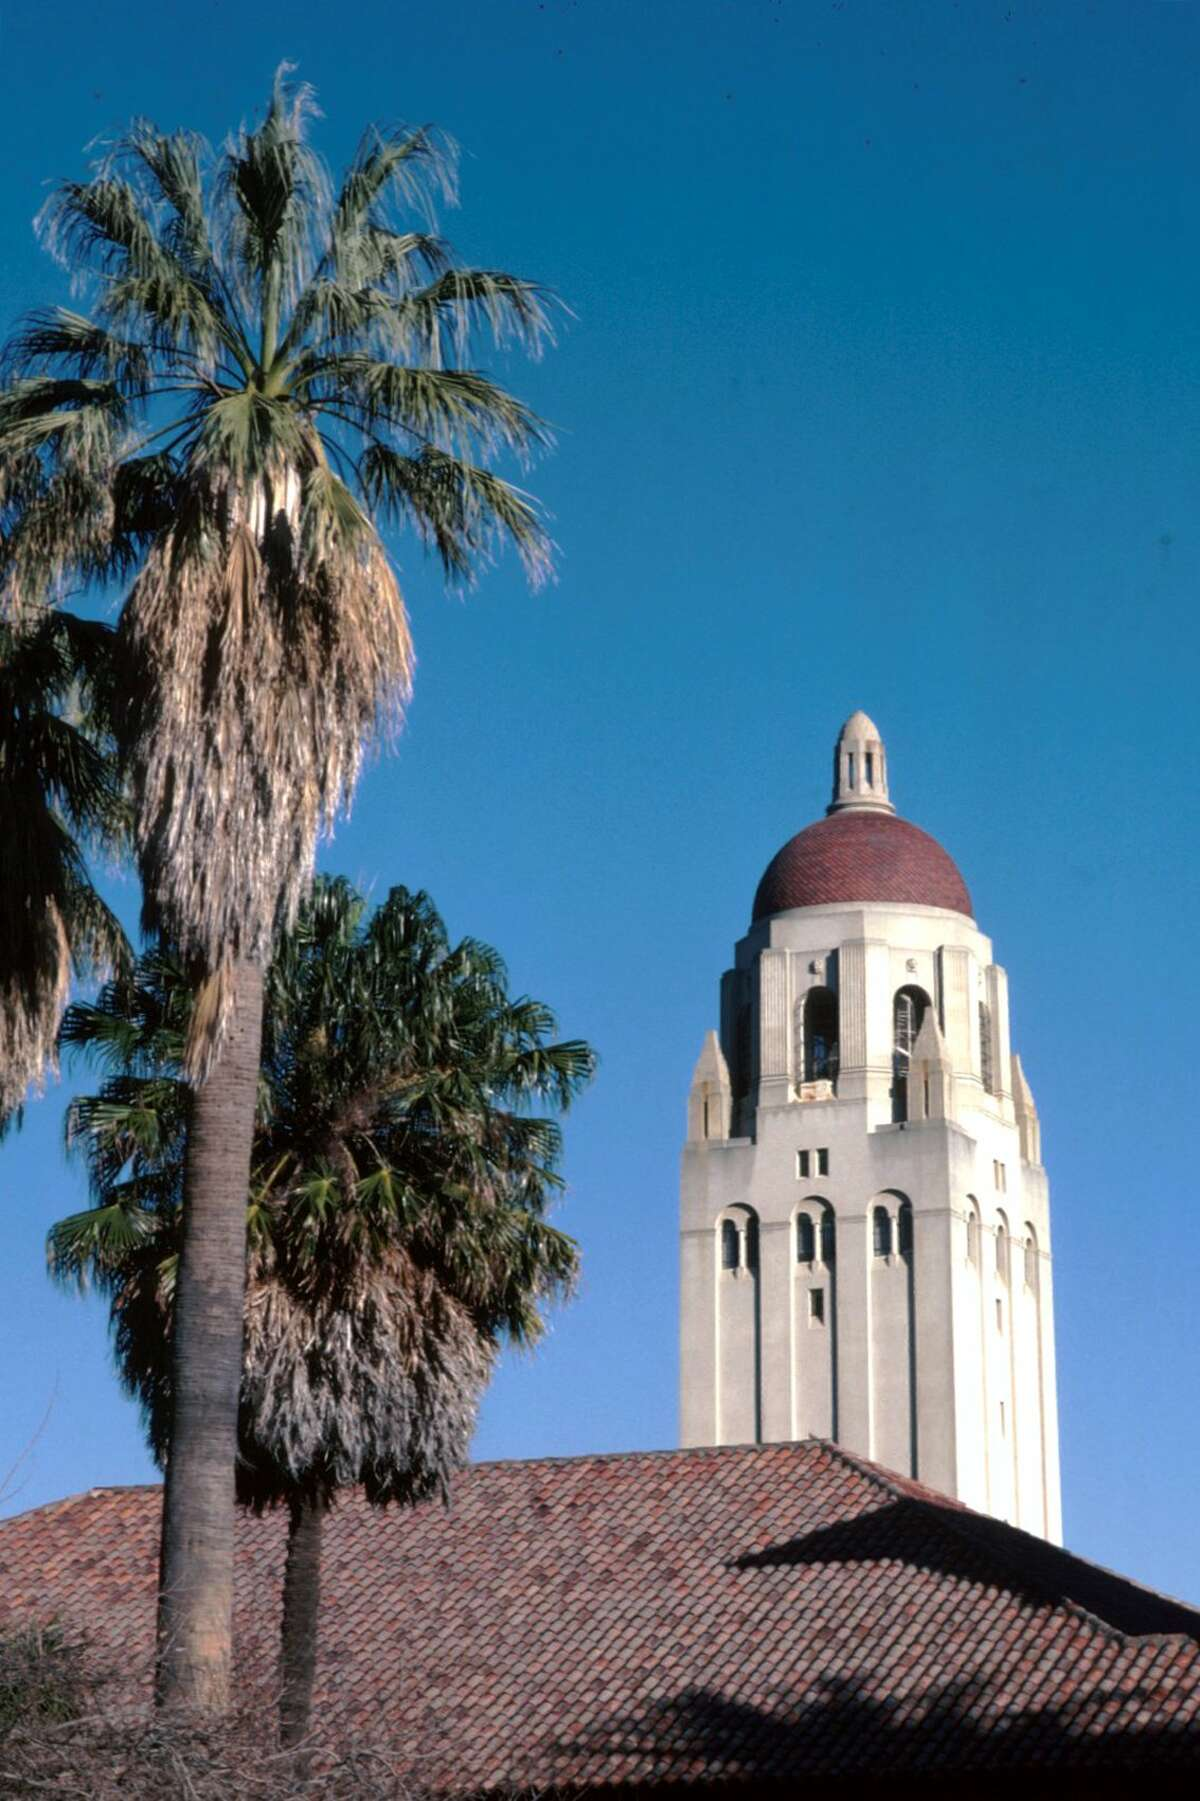 Hoover Tower on the Stanford University campus in Palo Alto, Calif.